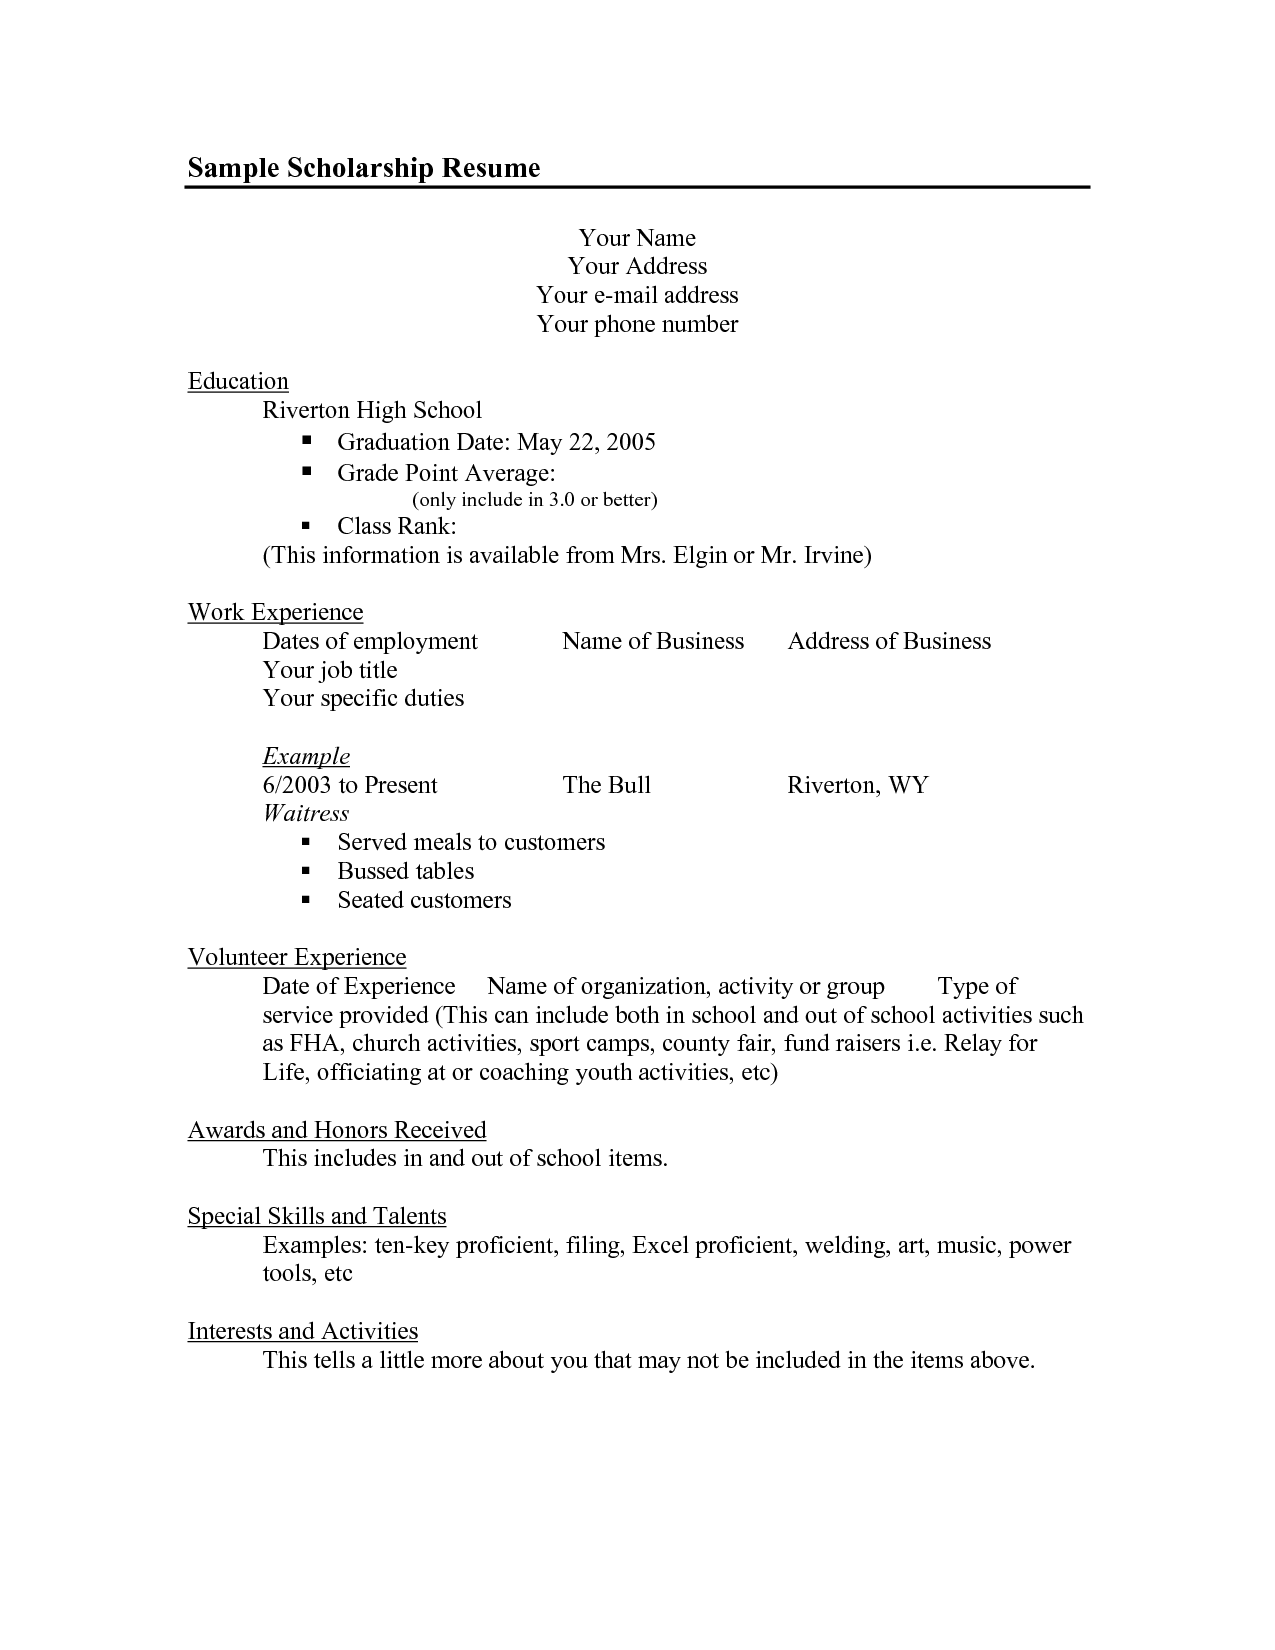 Scholarship Resume Templates | Sample Scholarship Resume Graduation Date  May 22, 2005